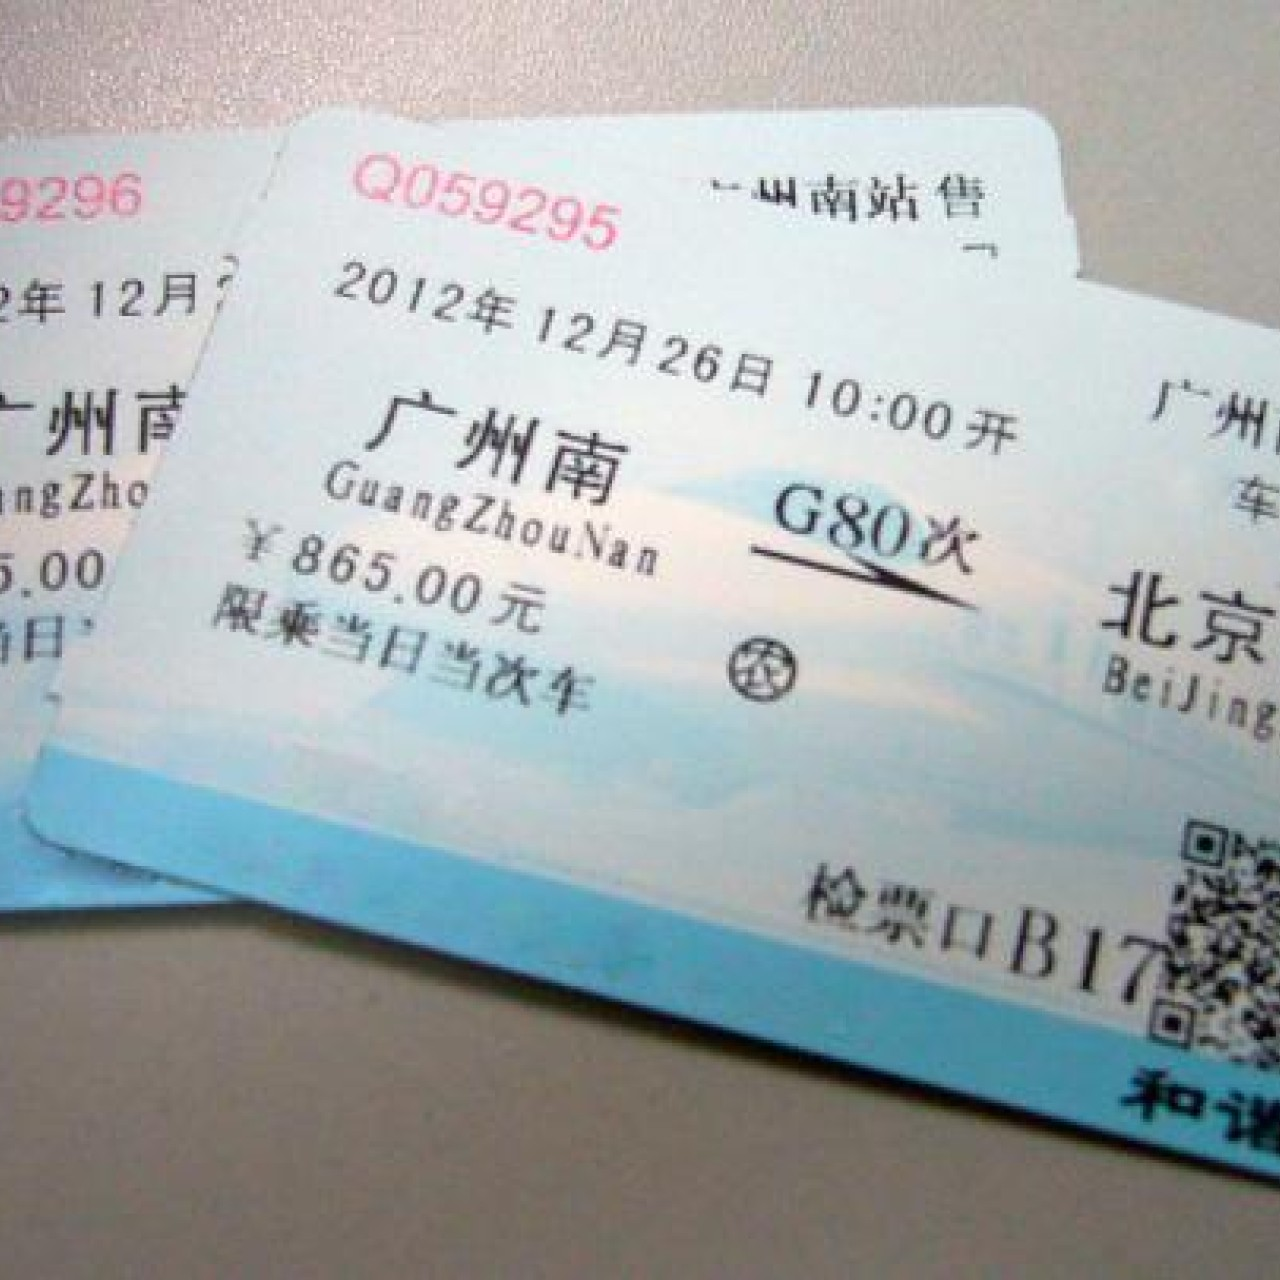 Tickets go on sale for high-speed rail link between Beijing